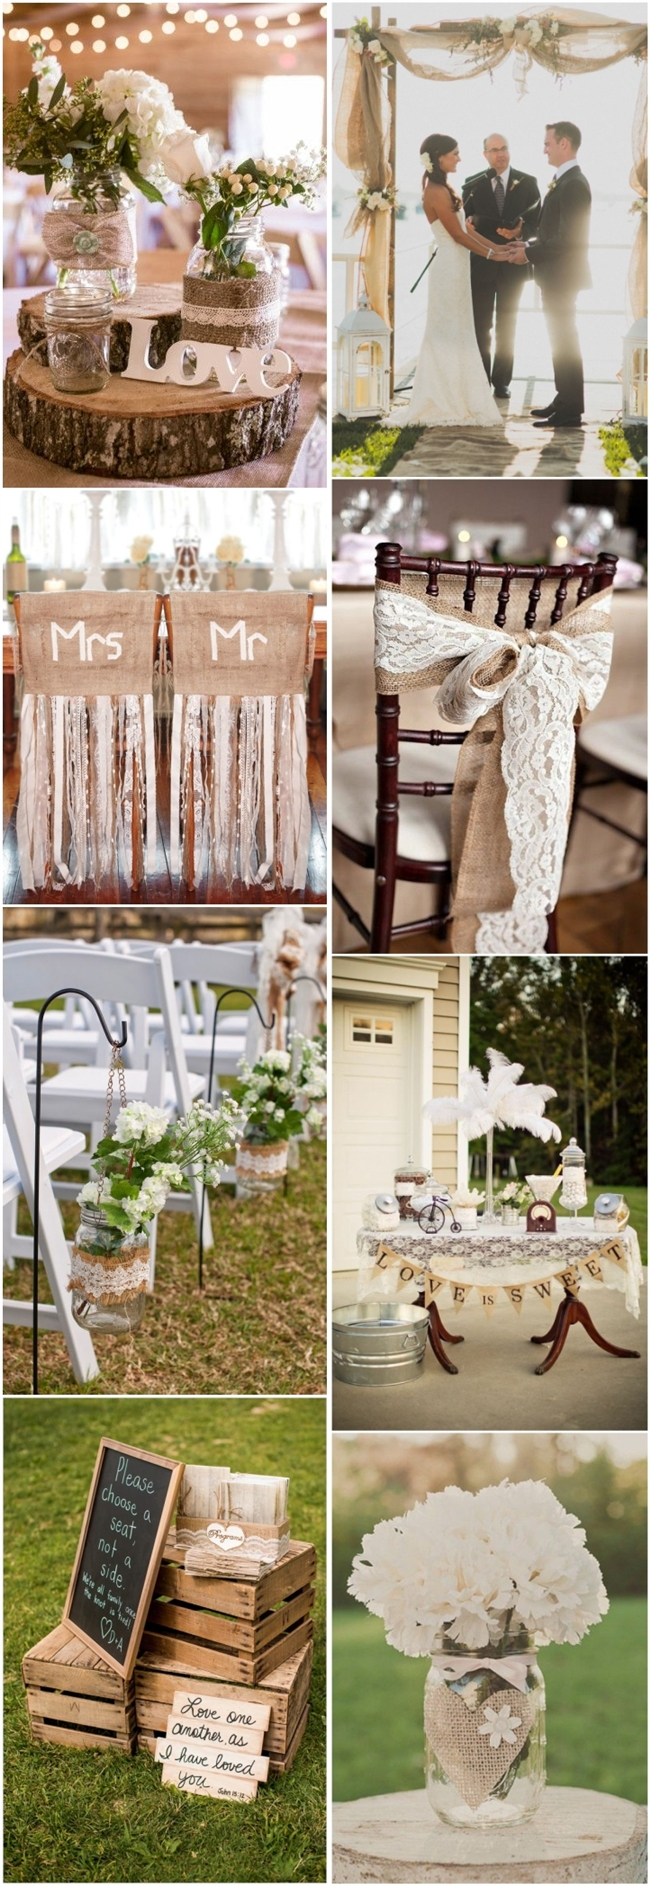 45 Chic Rustic Burlap  Lace Wedding Ideas and Inspiration  Tulle  Chantilly Wedding Blog